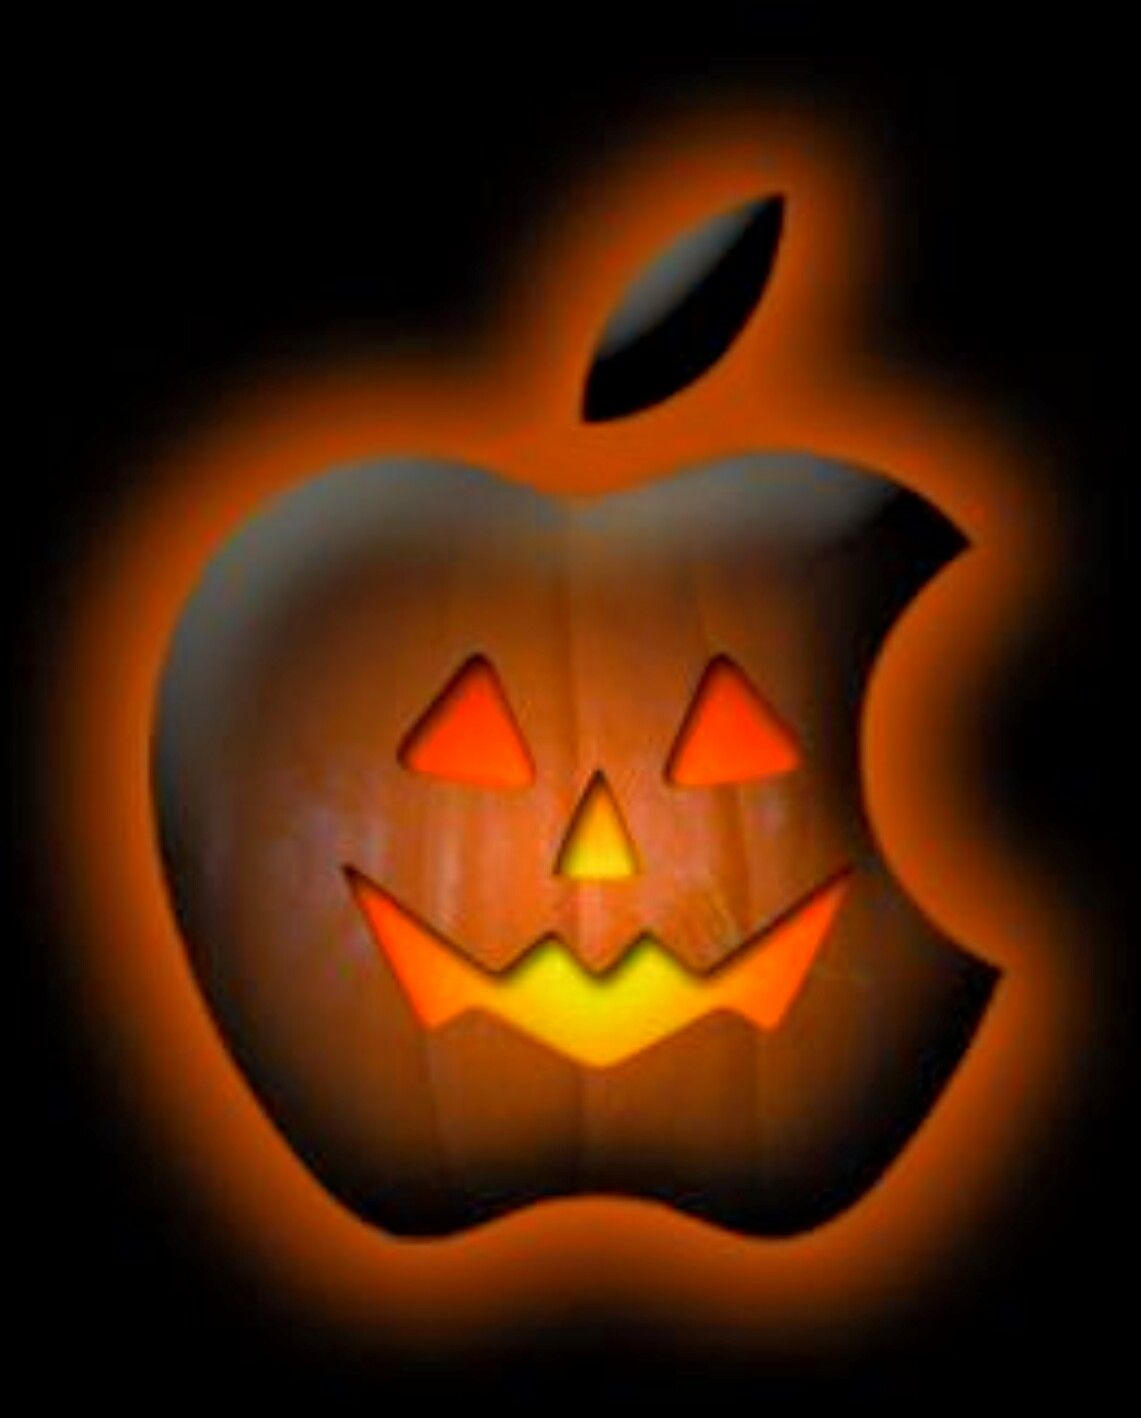 Jack-o-lantern Apple logo picture | Have a Spooky Halloween! | Pinterest